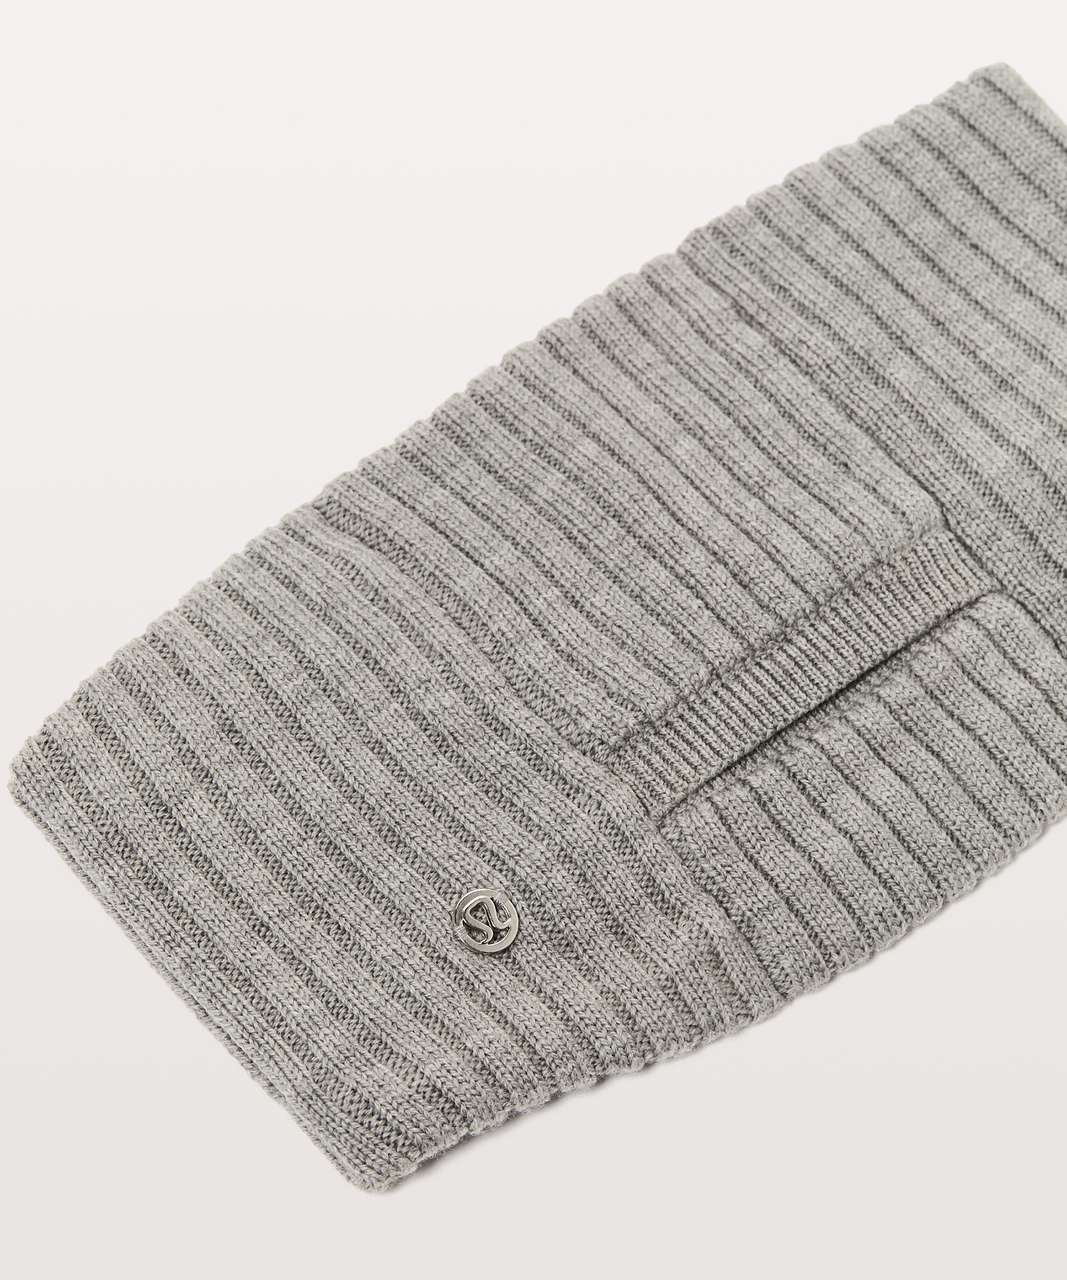 Lululemon Wool Be Cozy Ear Warmer - Heathered Core Medium Grey